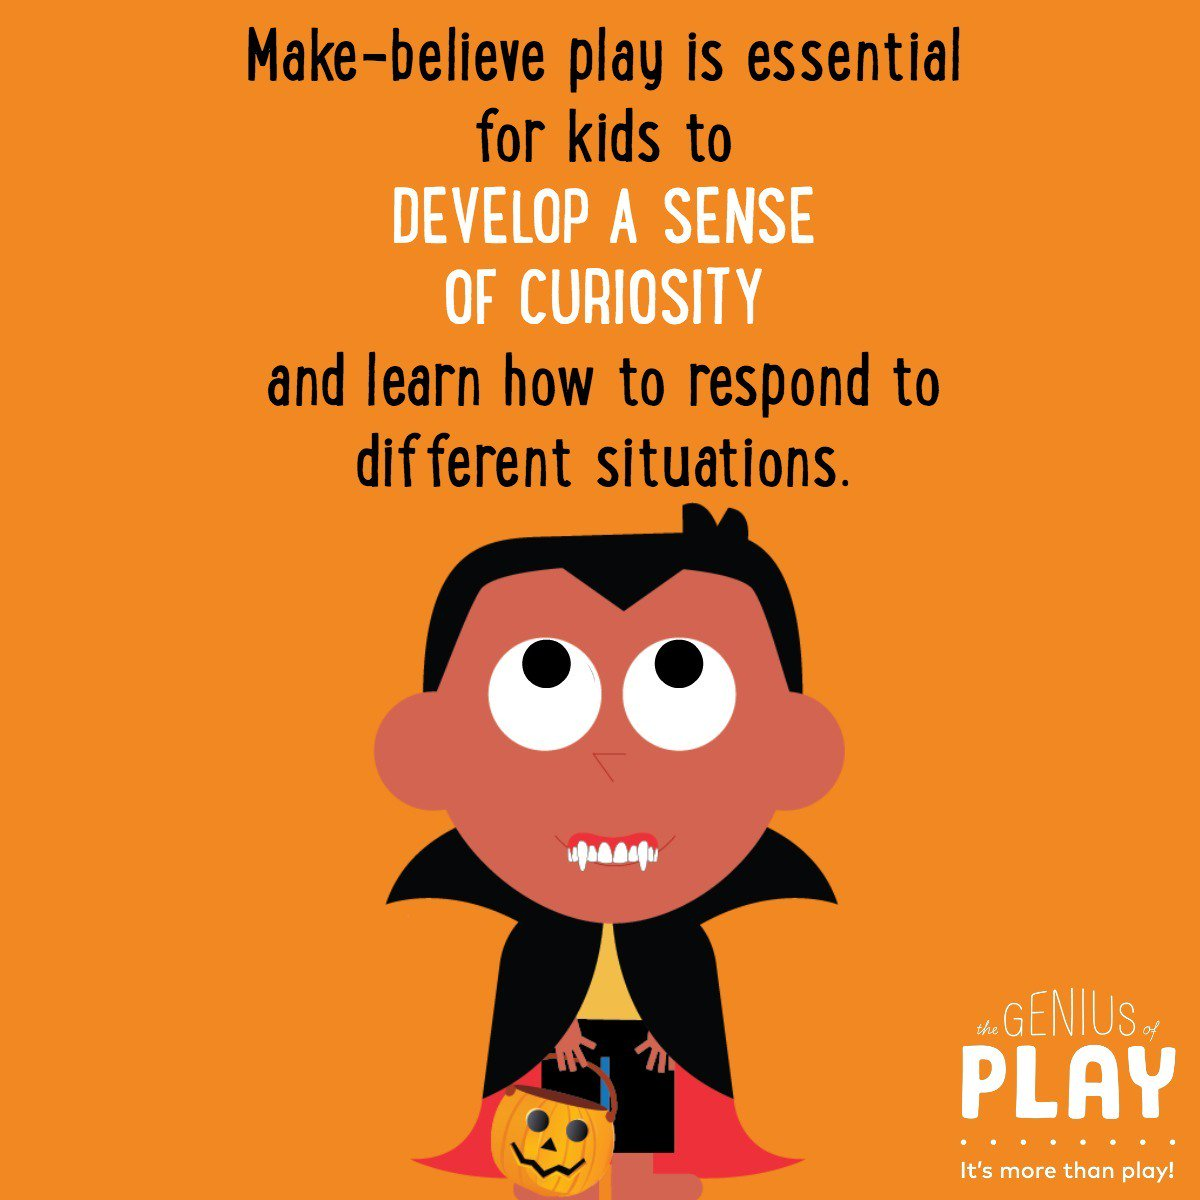 Another reason why its important to let kids get frustrated during #play! #GeniusofPlay https://t.co/YOiwMI3G15